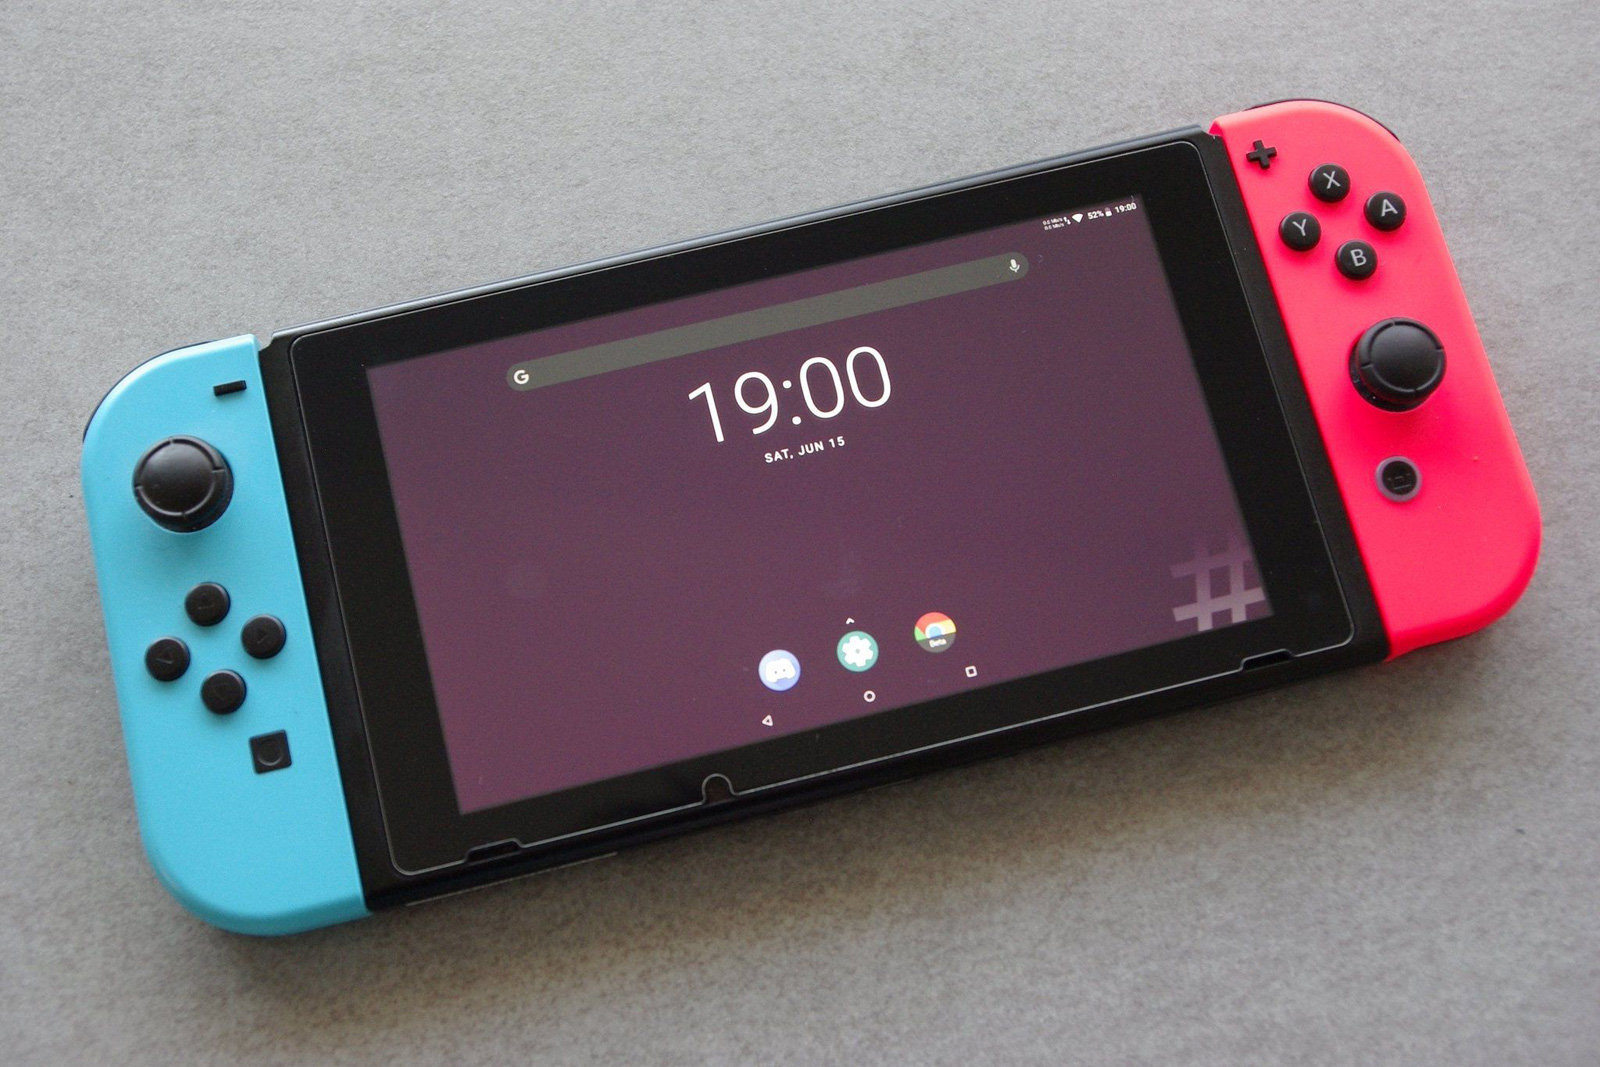 Il est désormais possible d'installer Android sur la console portable Nintendo Switch, grâce à une faille de son SoC